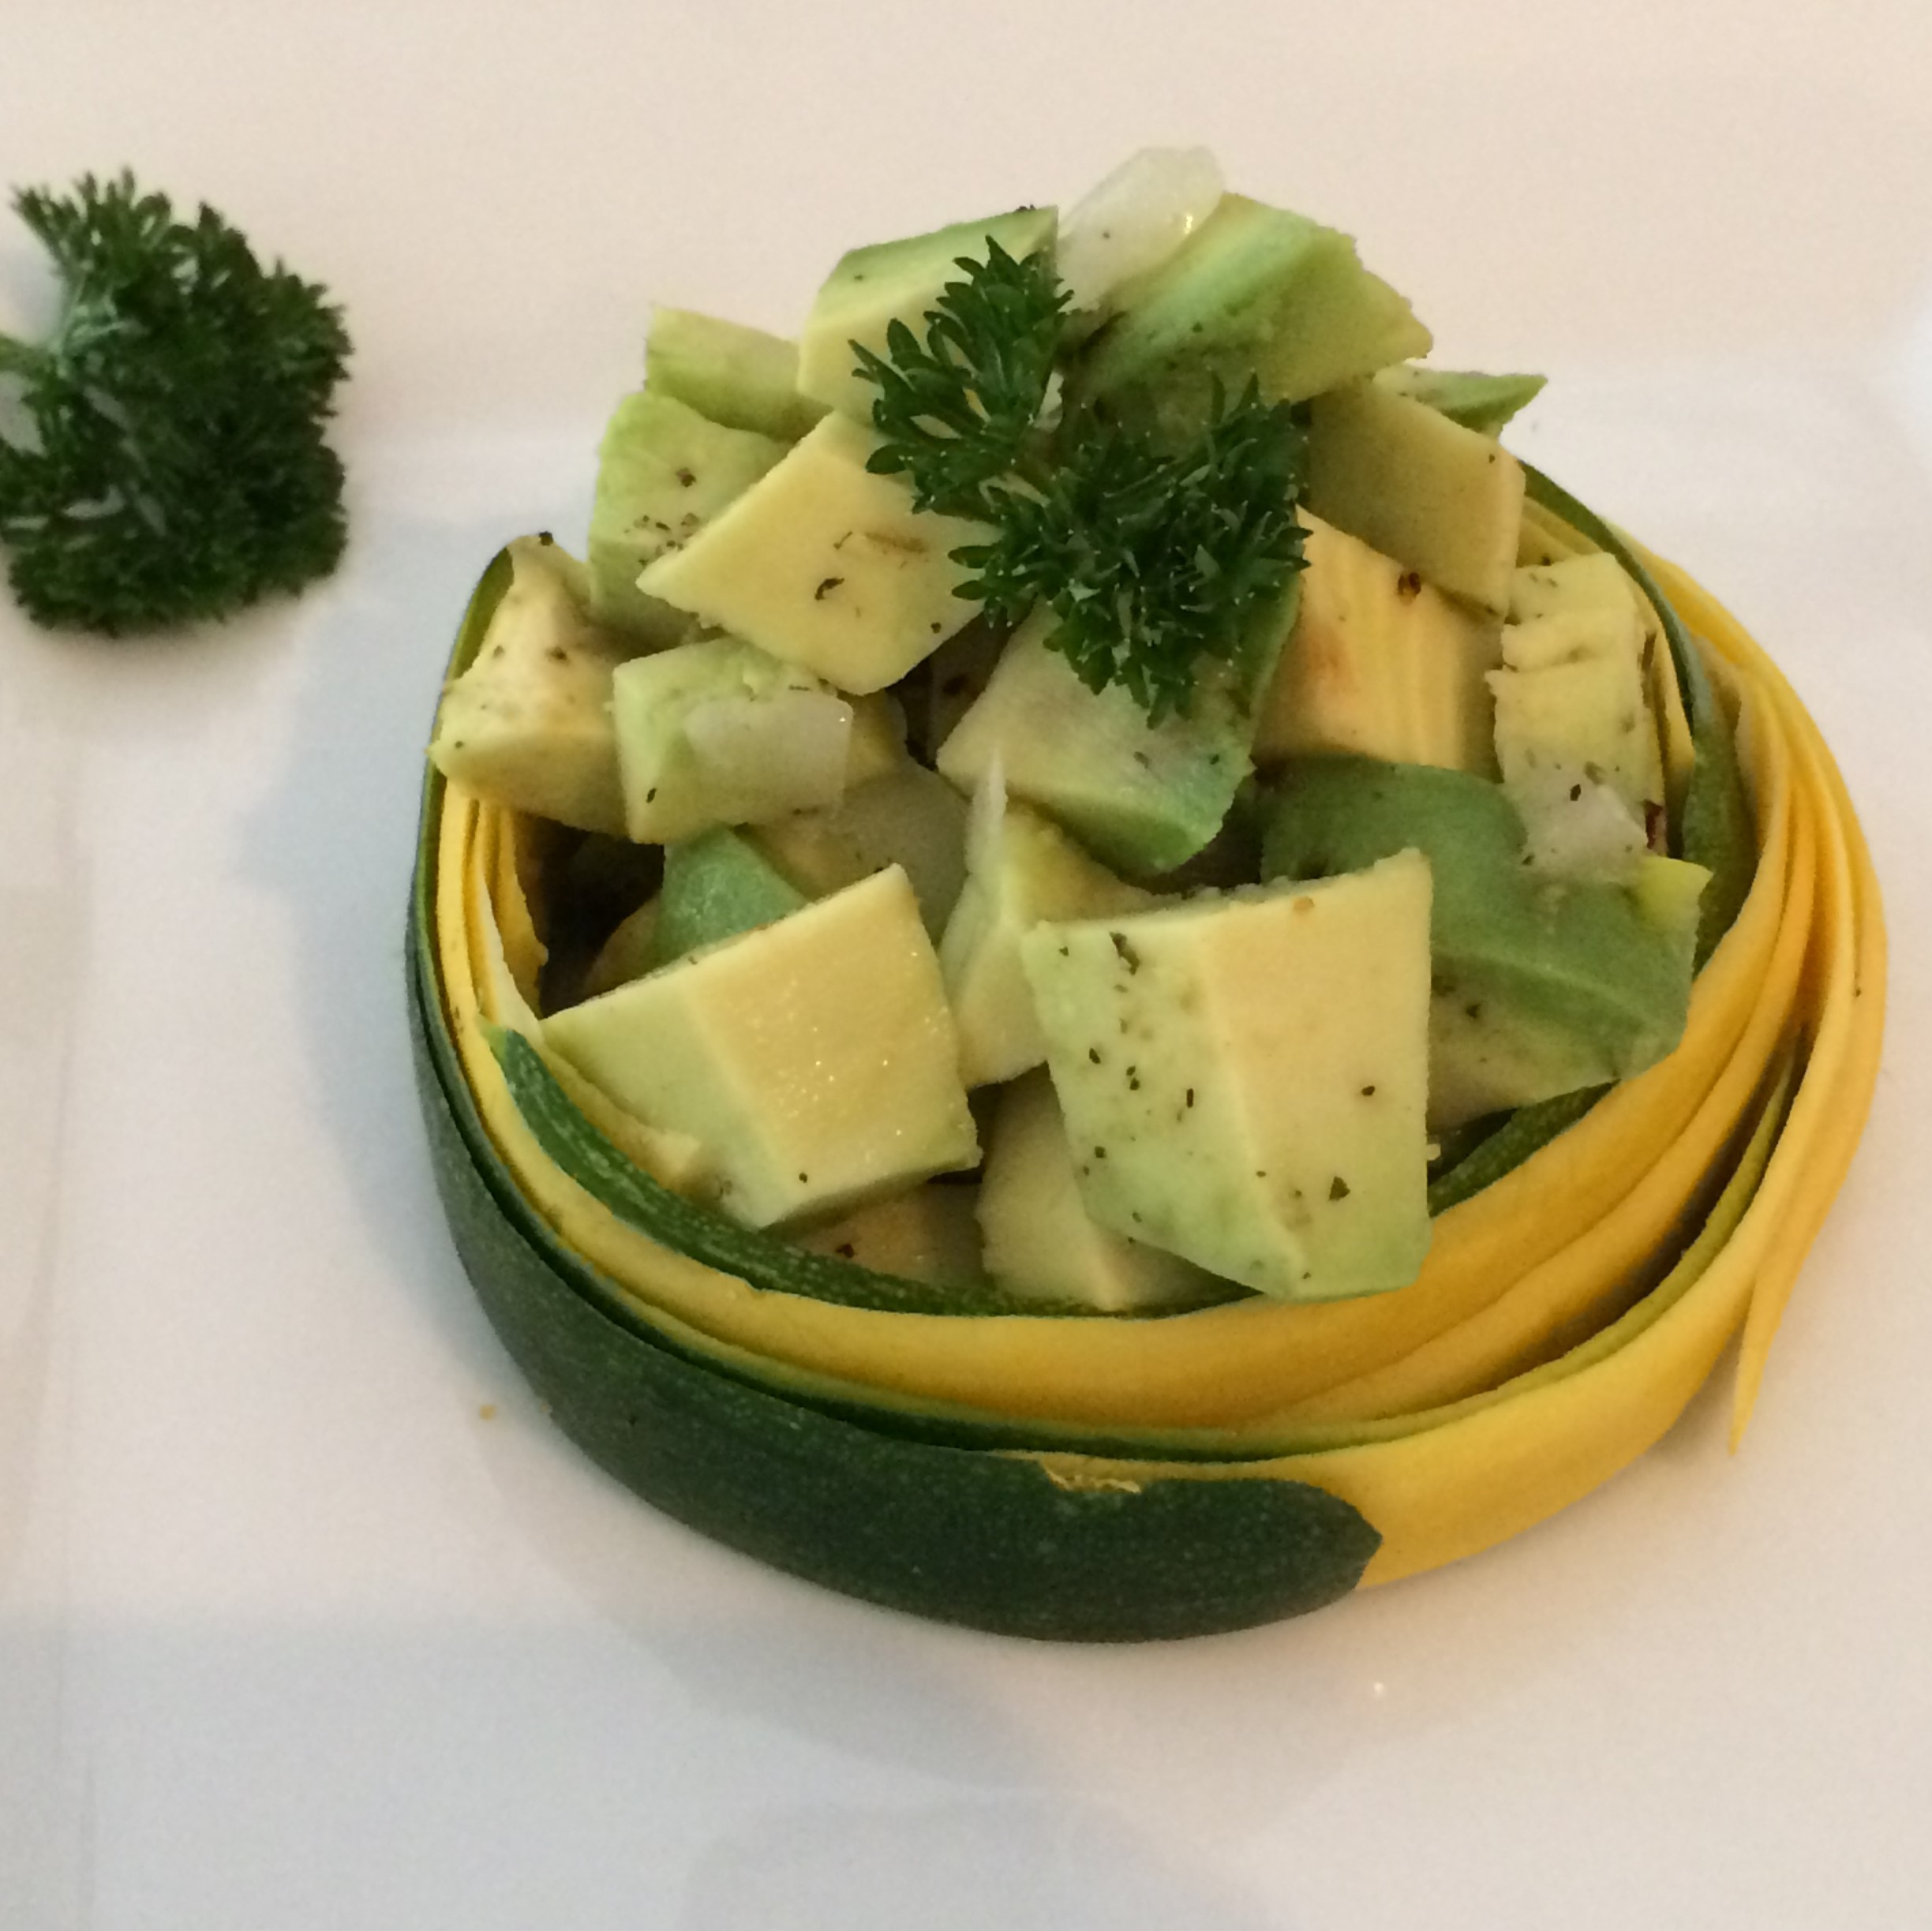 Avocado Tart